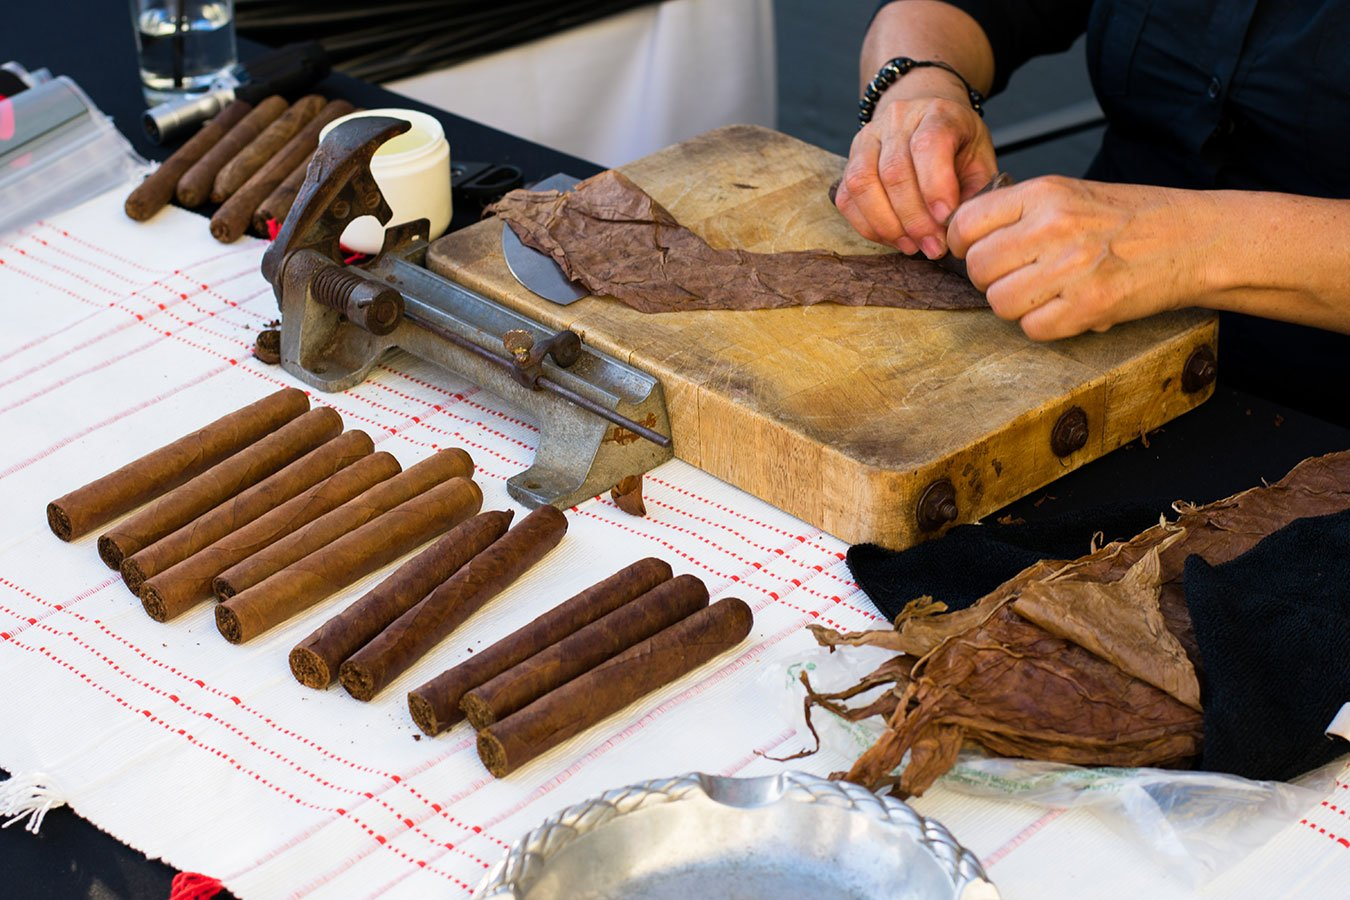 Cigar rolling demonstration at Southwest #Heartoftravel event in the FATVillage Arts District